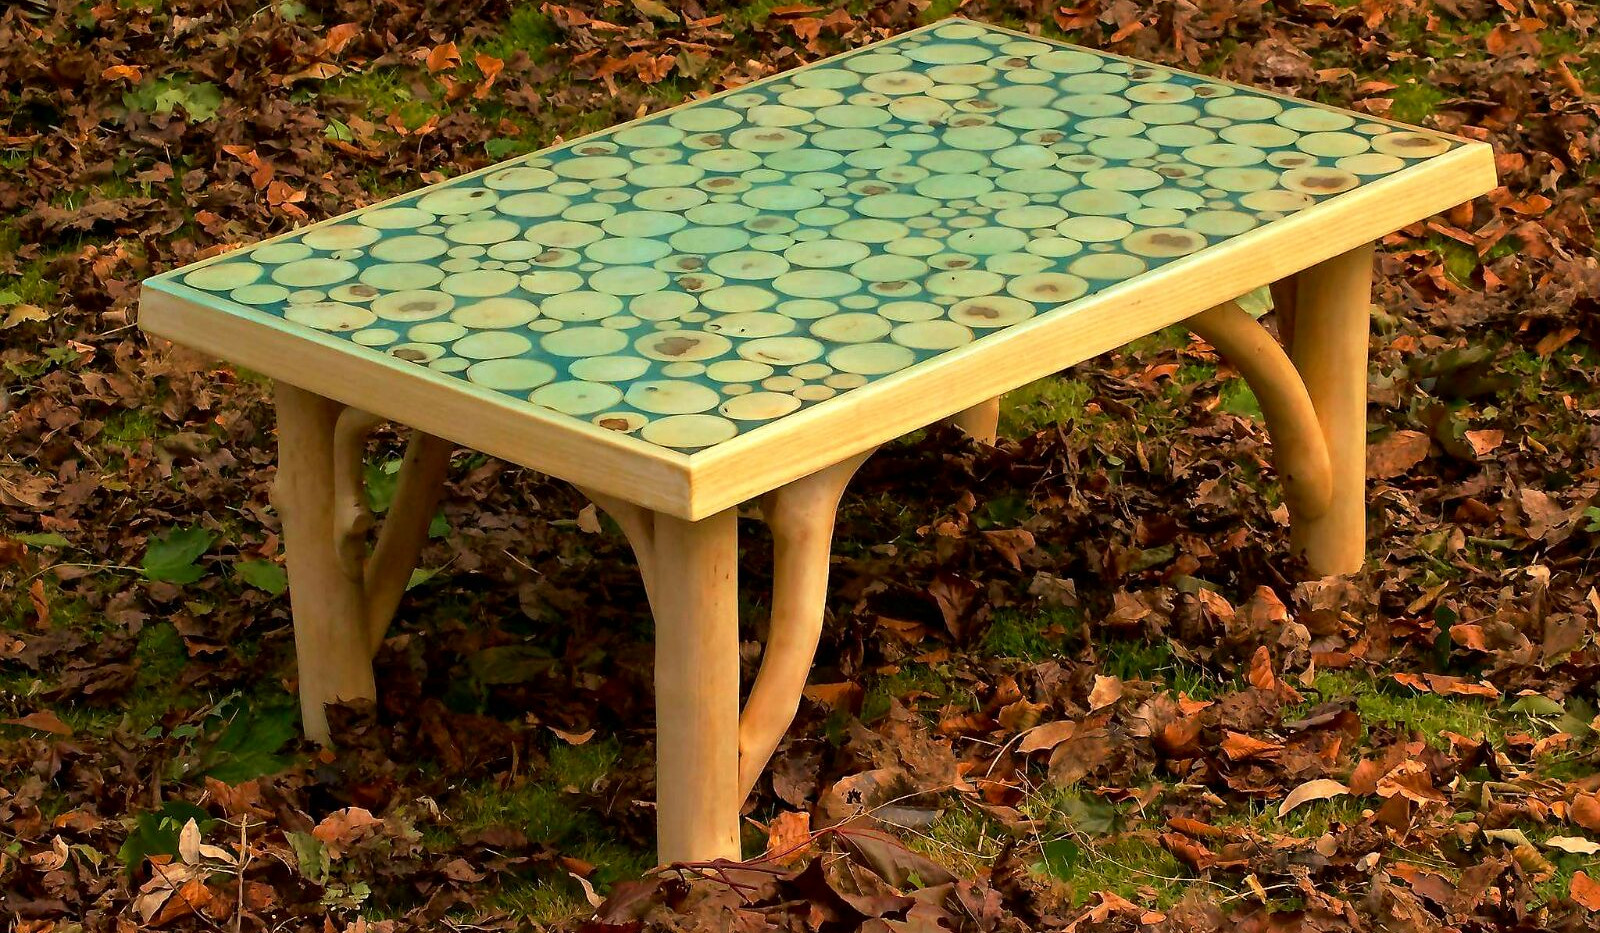 This was the first table we made together. Our friend Nicky has this. The legs were nicest on this one. I reckon at least 40 hours of sanding on this bad boy. Big learning curve.